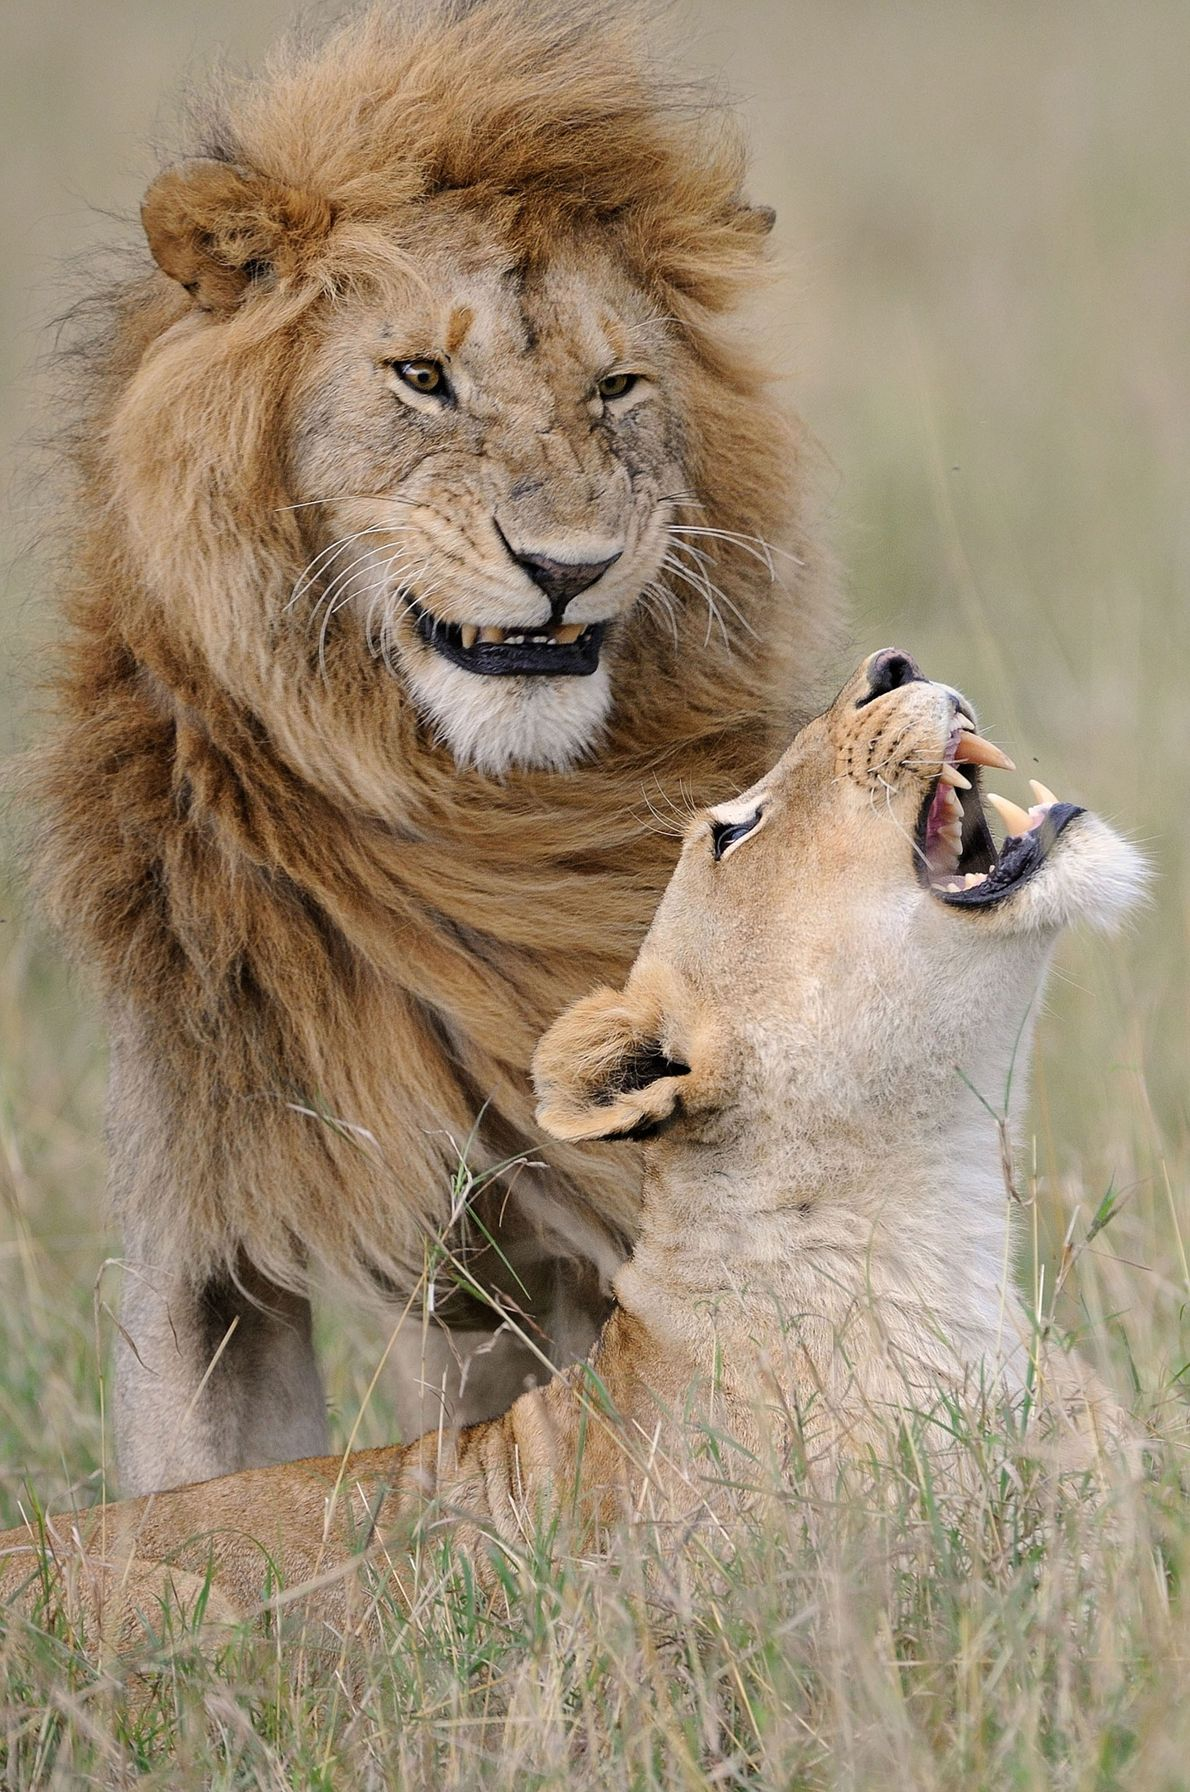 """After all these years he still makes me laugh,"" says one lioness in Maasai Mara, Kenya."